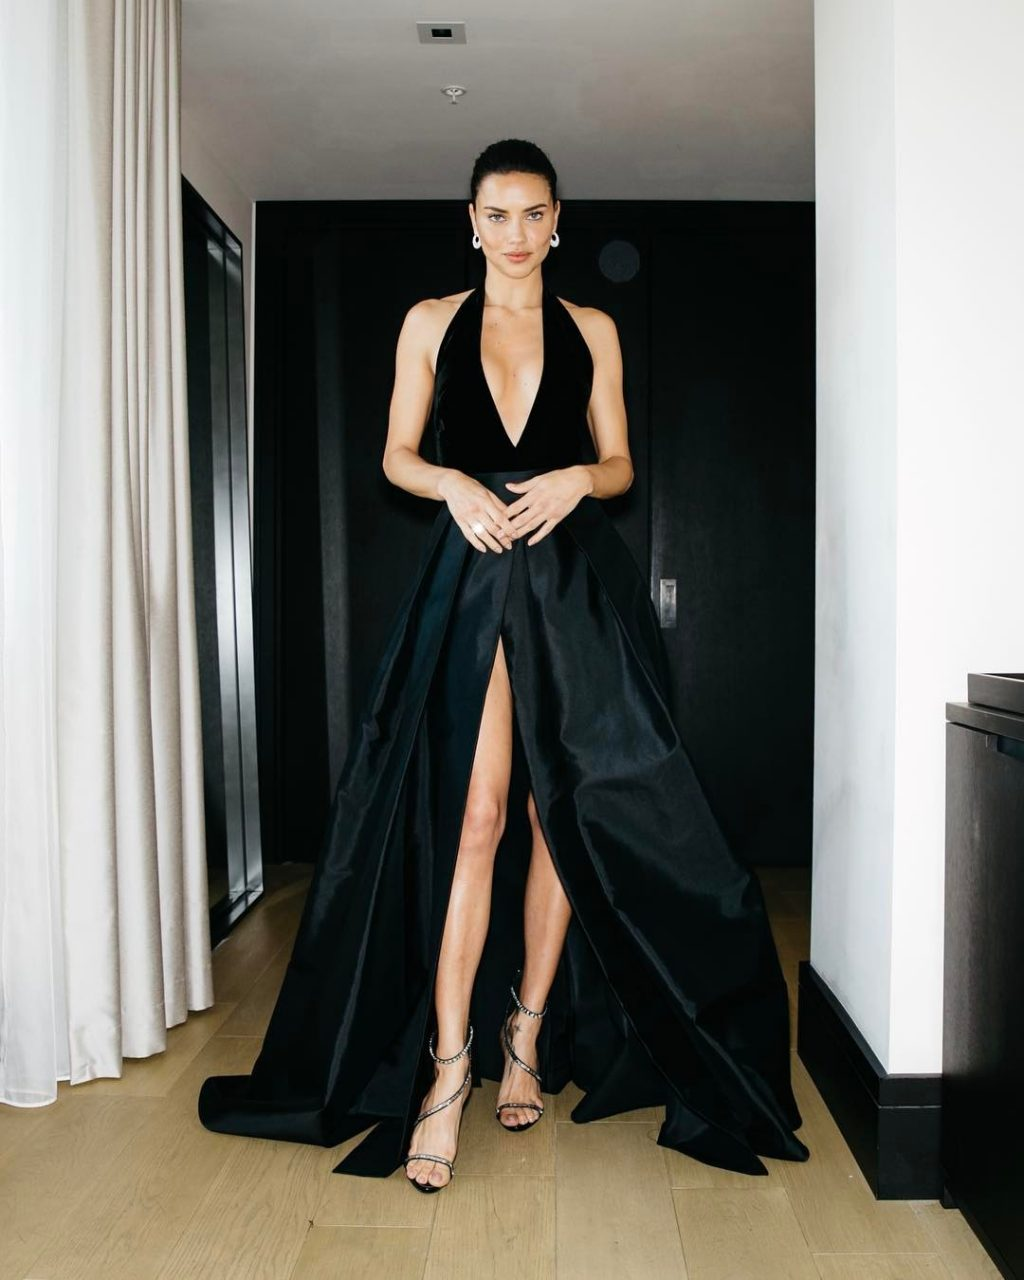 Adriana Lima's Top Secrets to Staying in Supermodel Shape